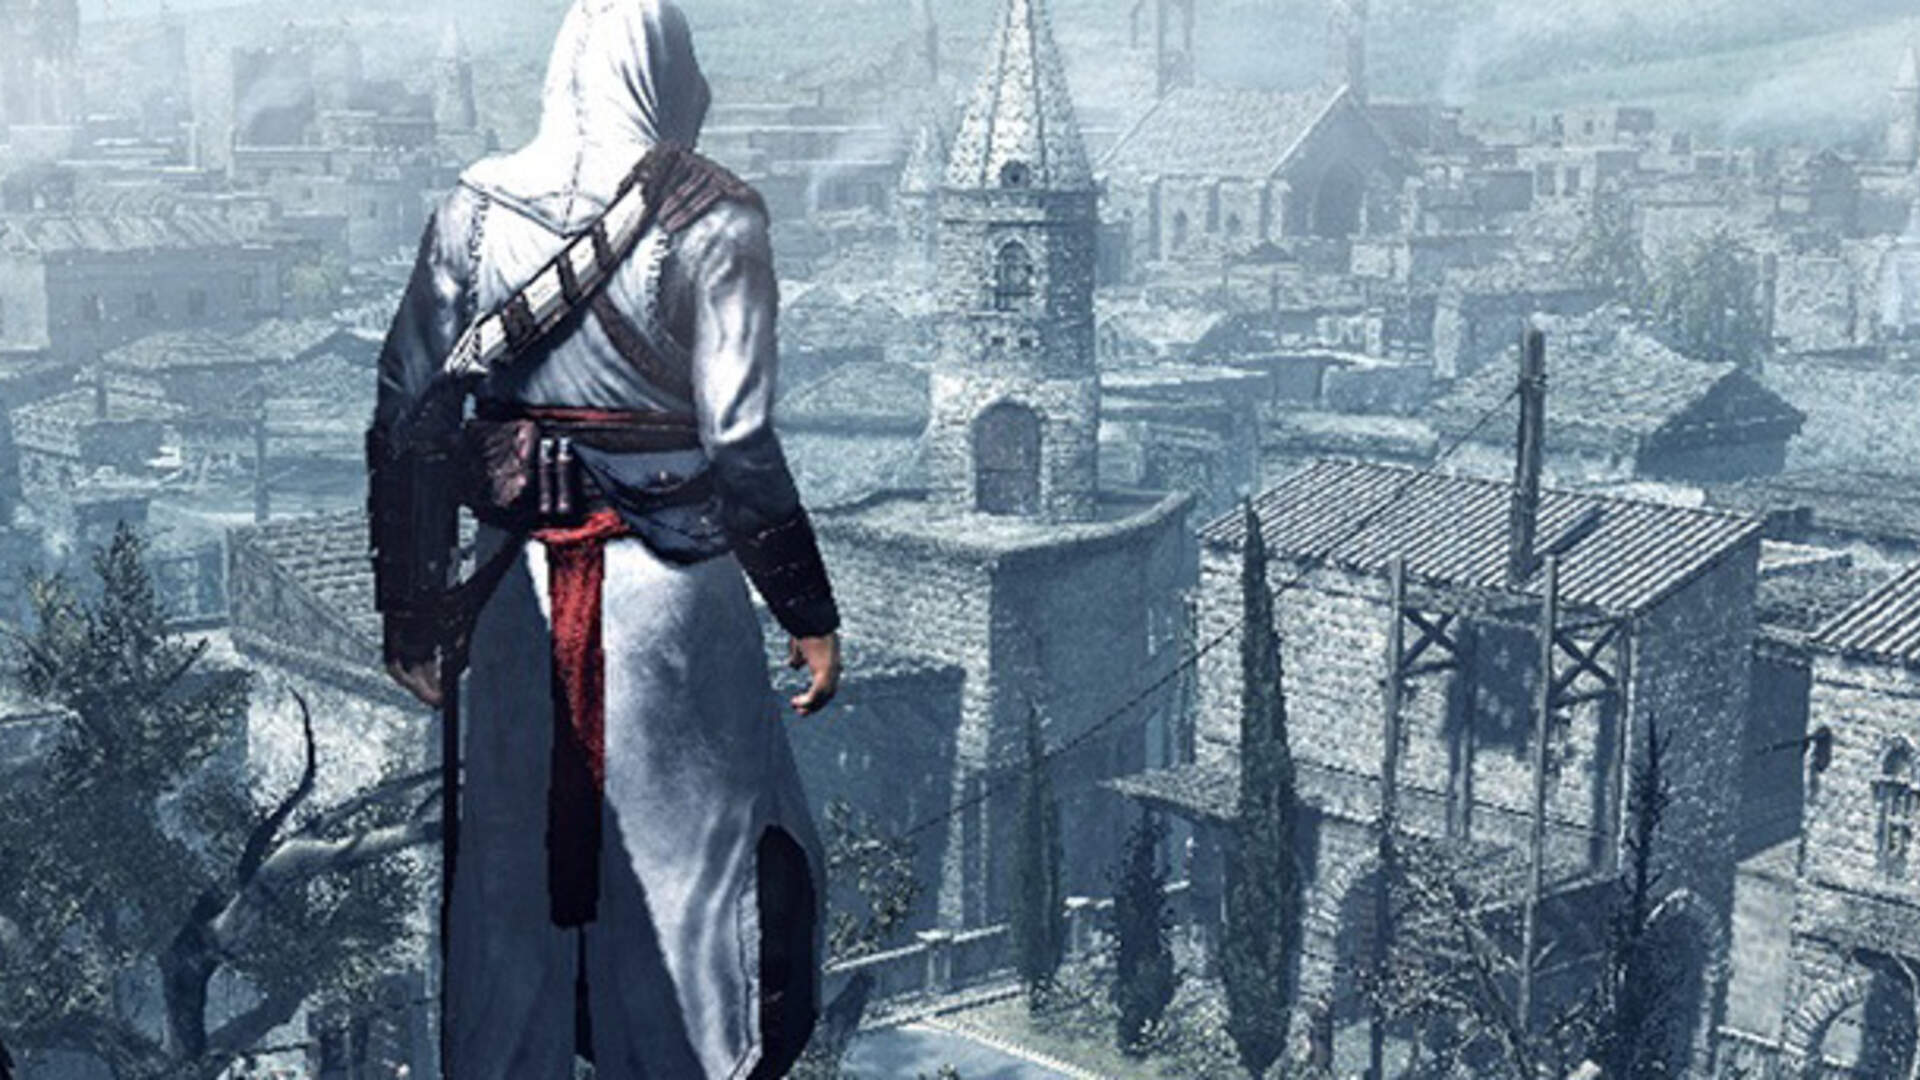 The Birth of Assassin's Creed, Sands of Time, and Legal Battles: Patrice Désilets Remembers a Decade With Ubisoft